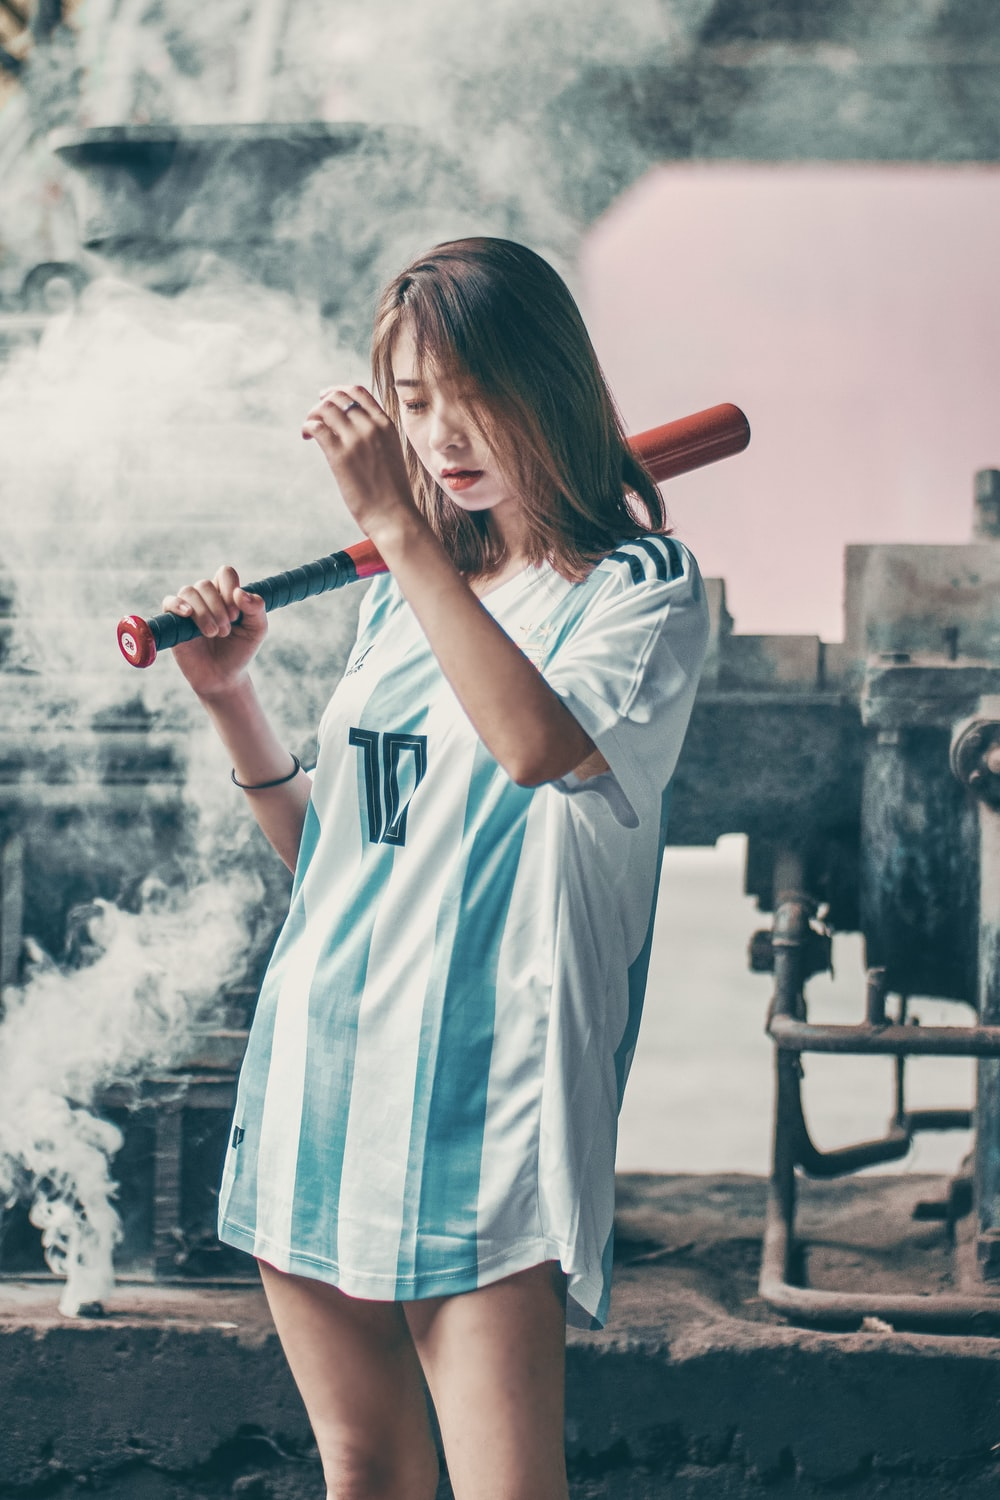 woman in white and blue long sleeve shirt holding red baseball bat